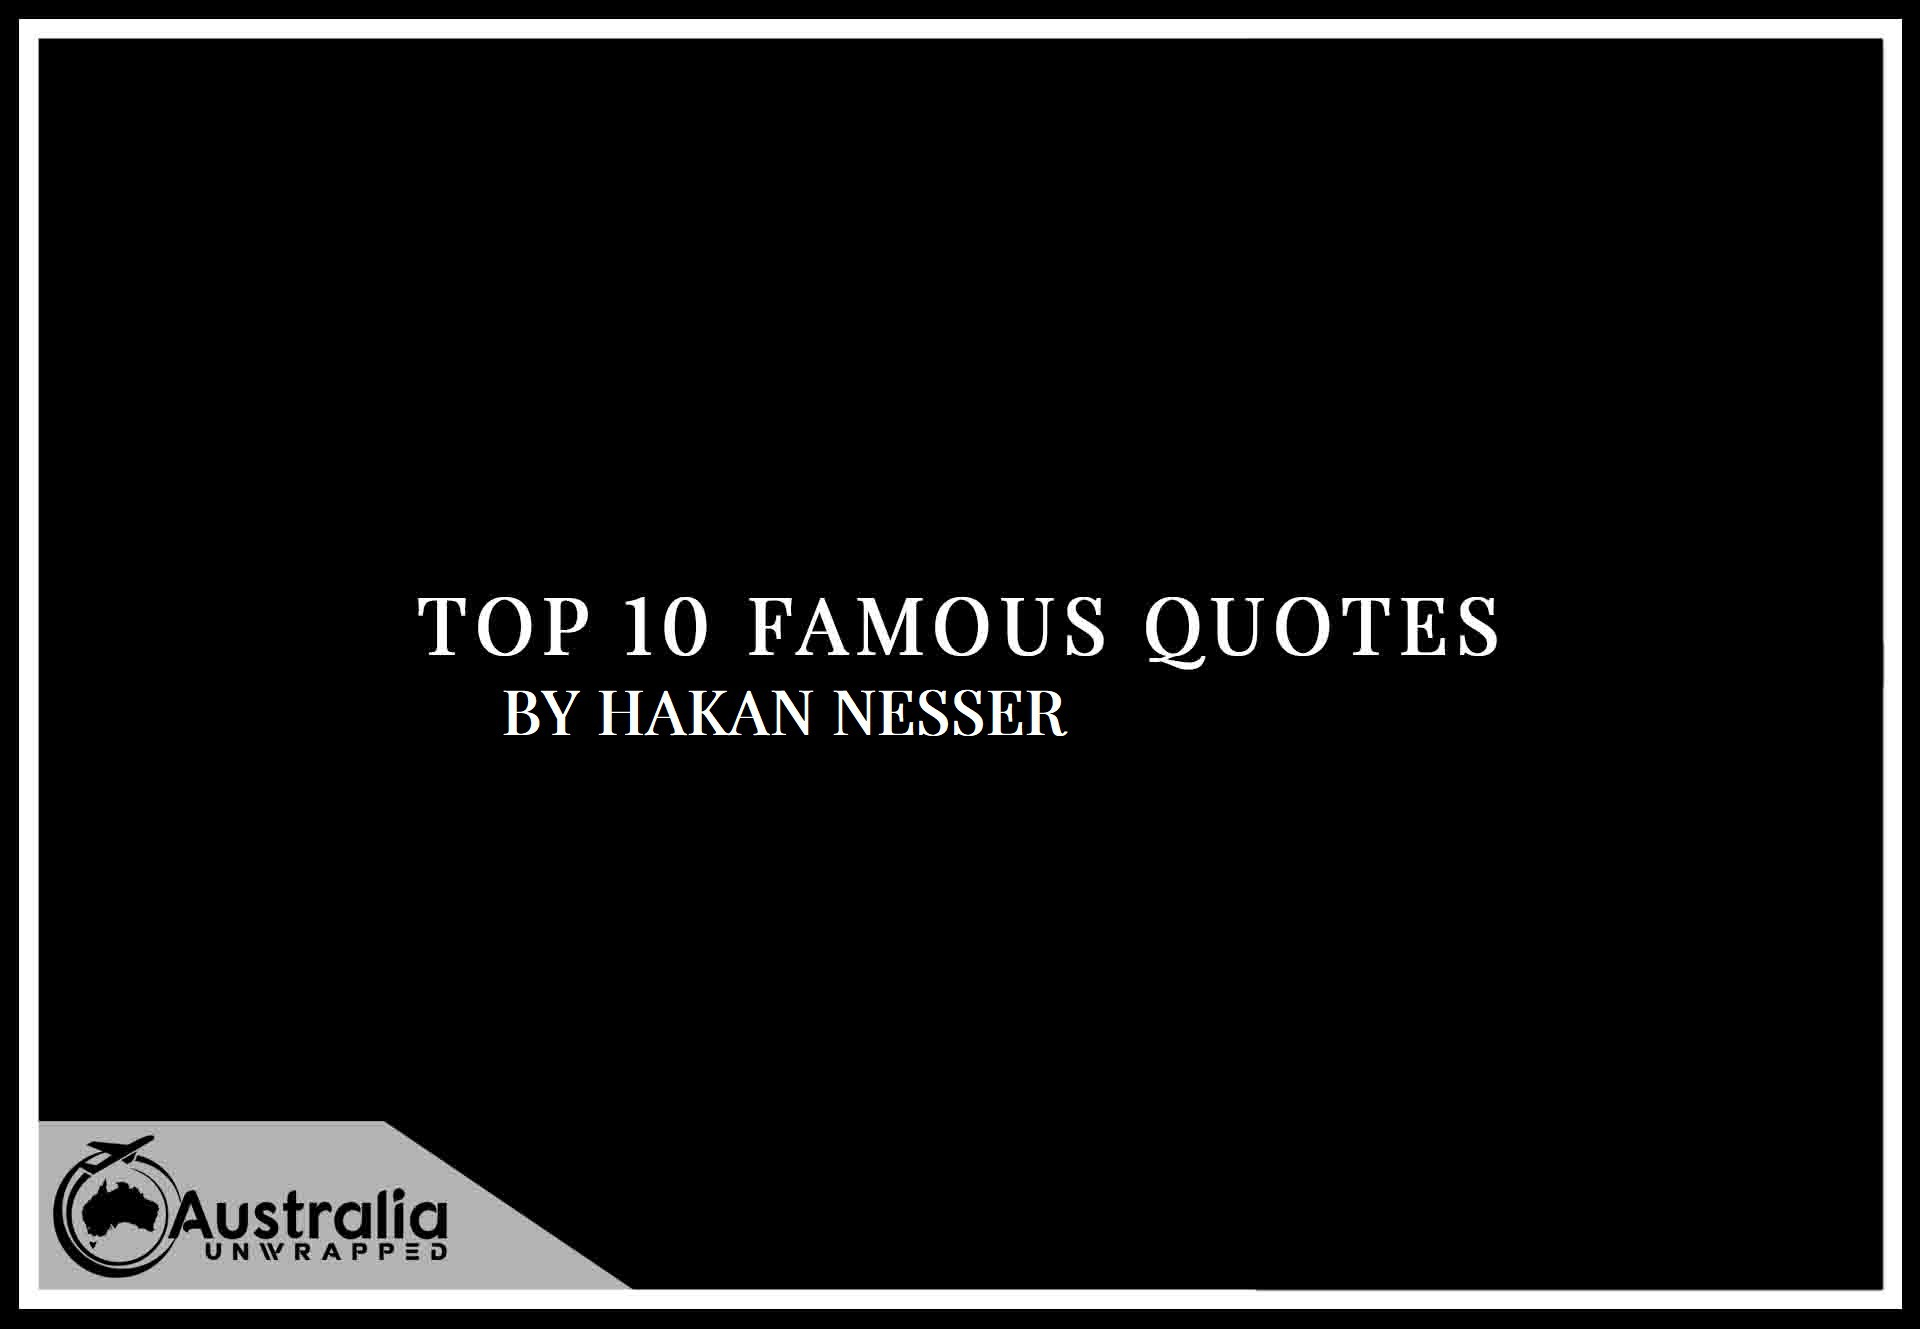 Top 10 Famous Quotes by Author Håkan Nesser